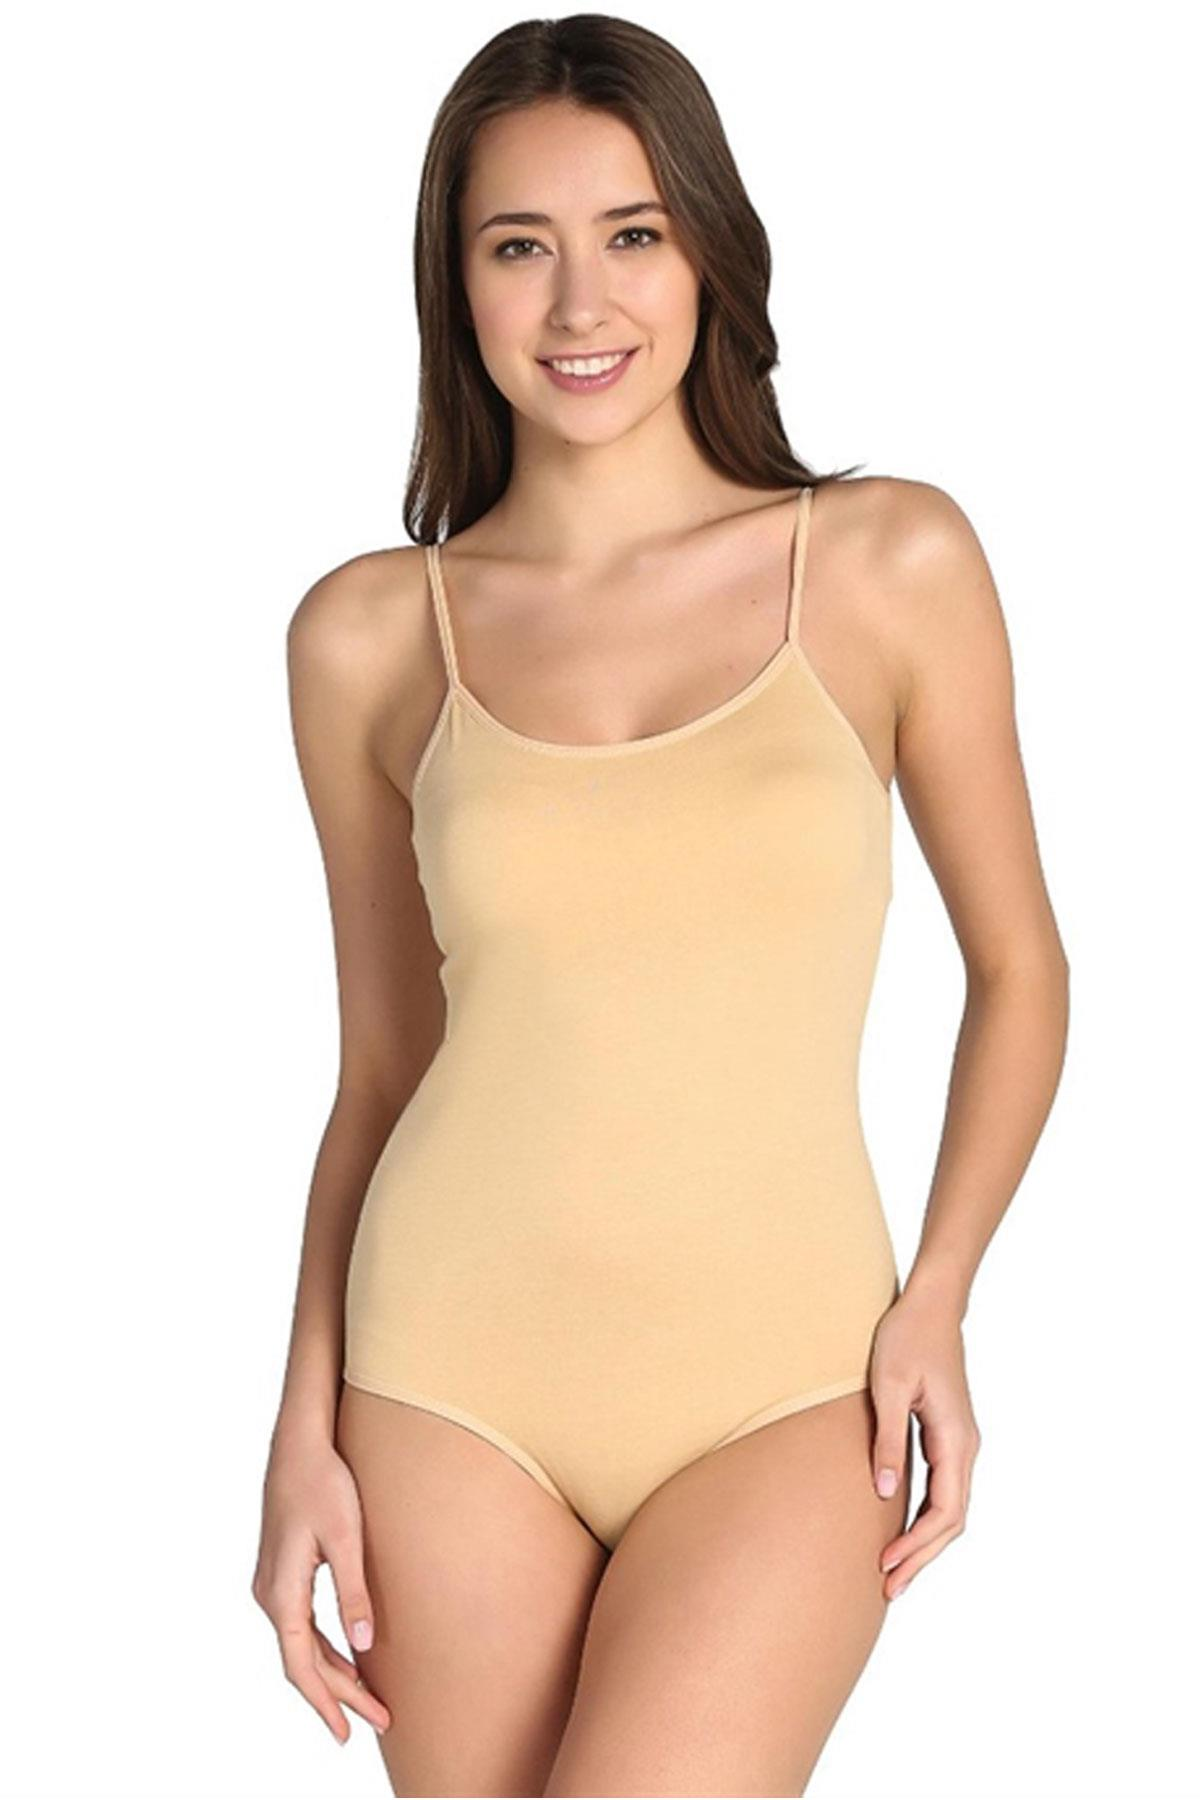 Women's Thin Strap Snap Crotch Bodysuit- 2 Pieces